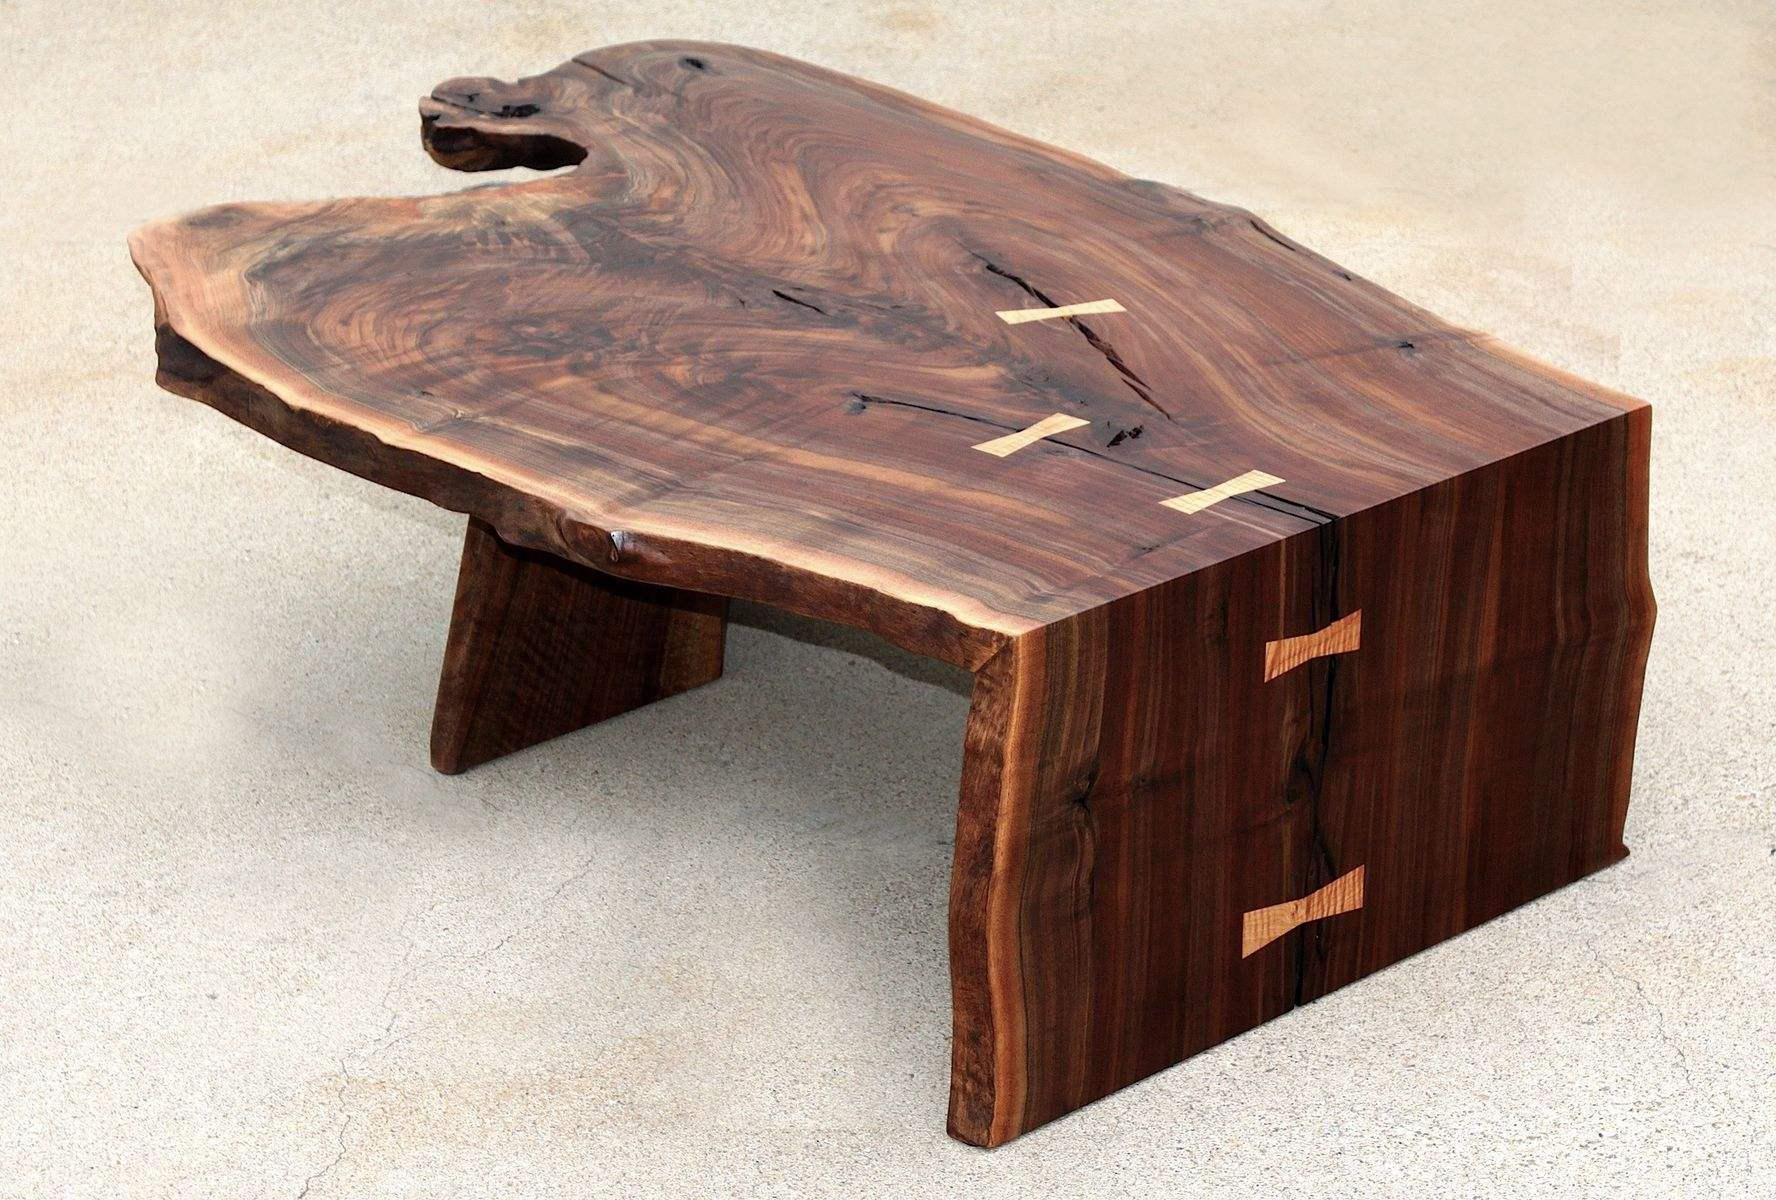 Custom Modern Coffee/cocktail Table, Waterfall, Walnutaaron Throughout Popular Waterfall Coffee Tables (View 13 of 20)